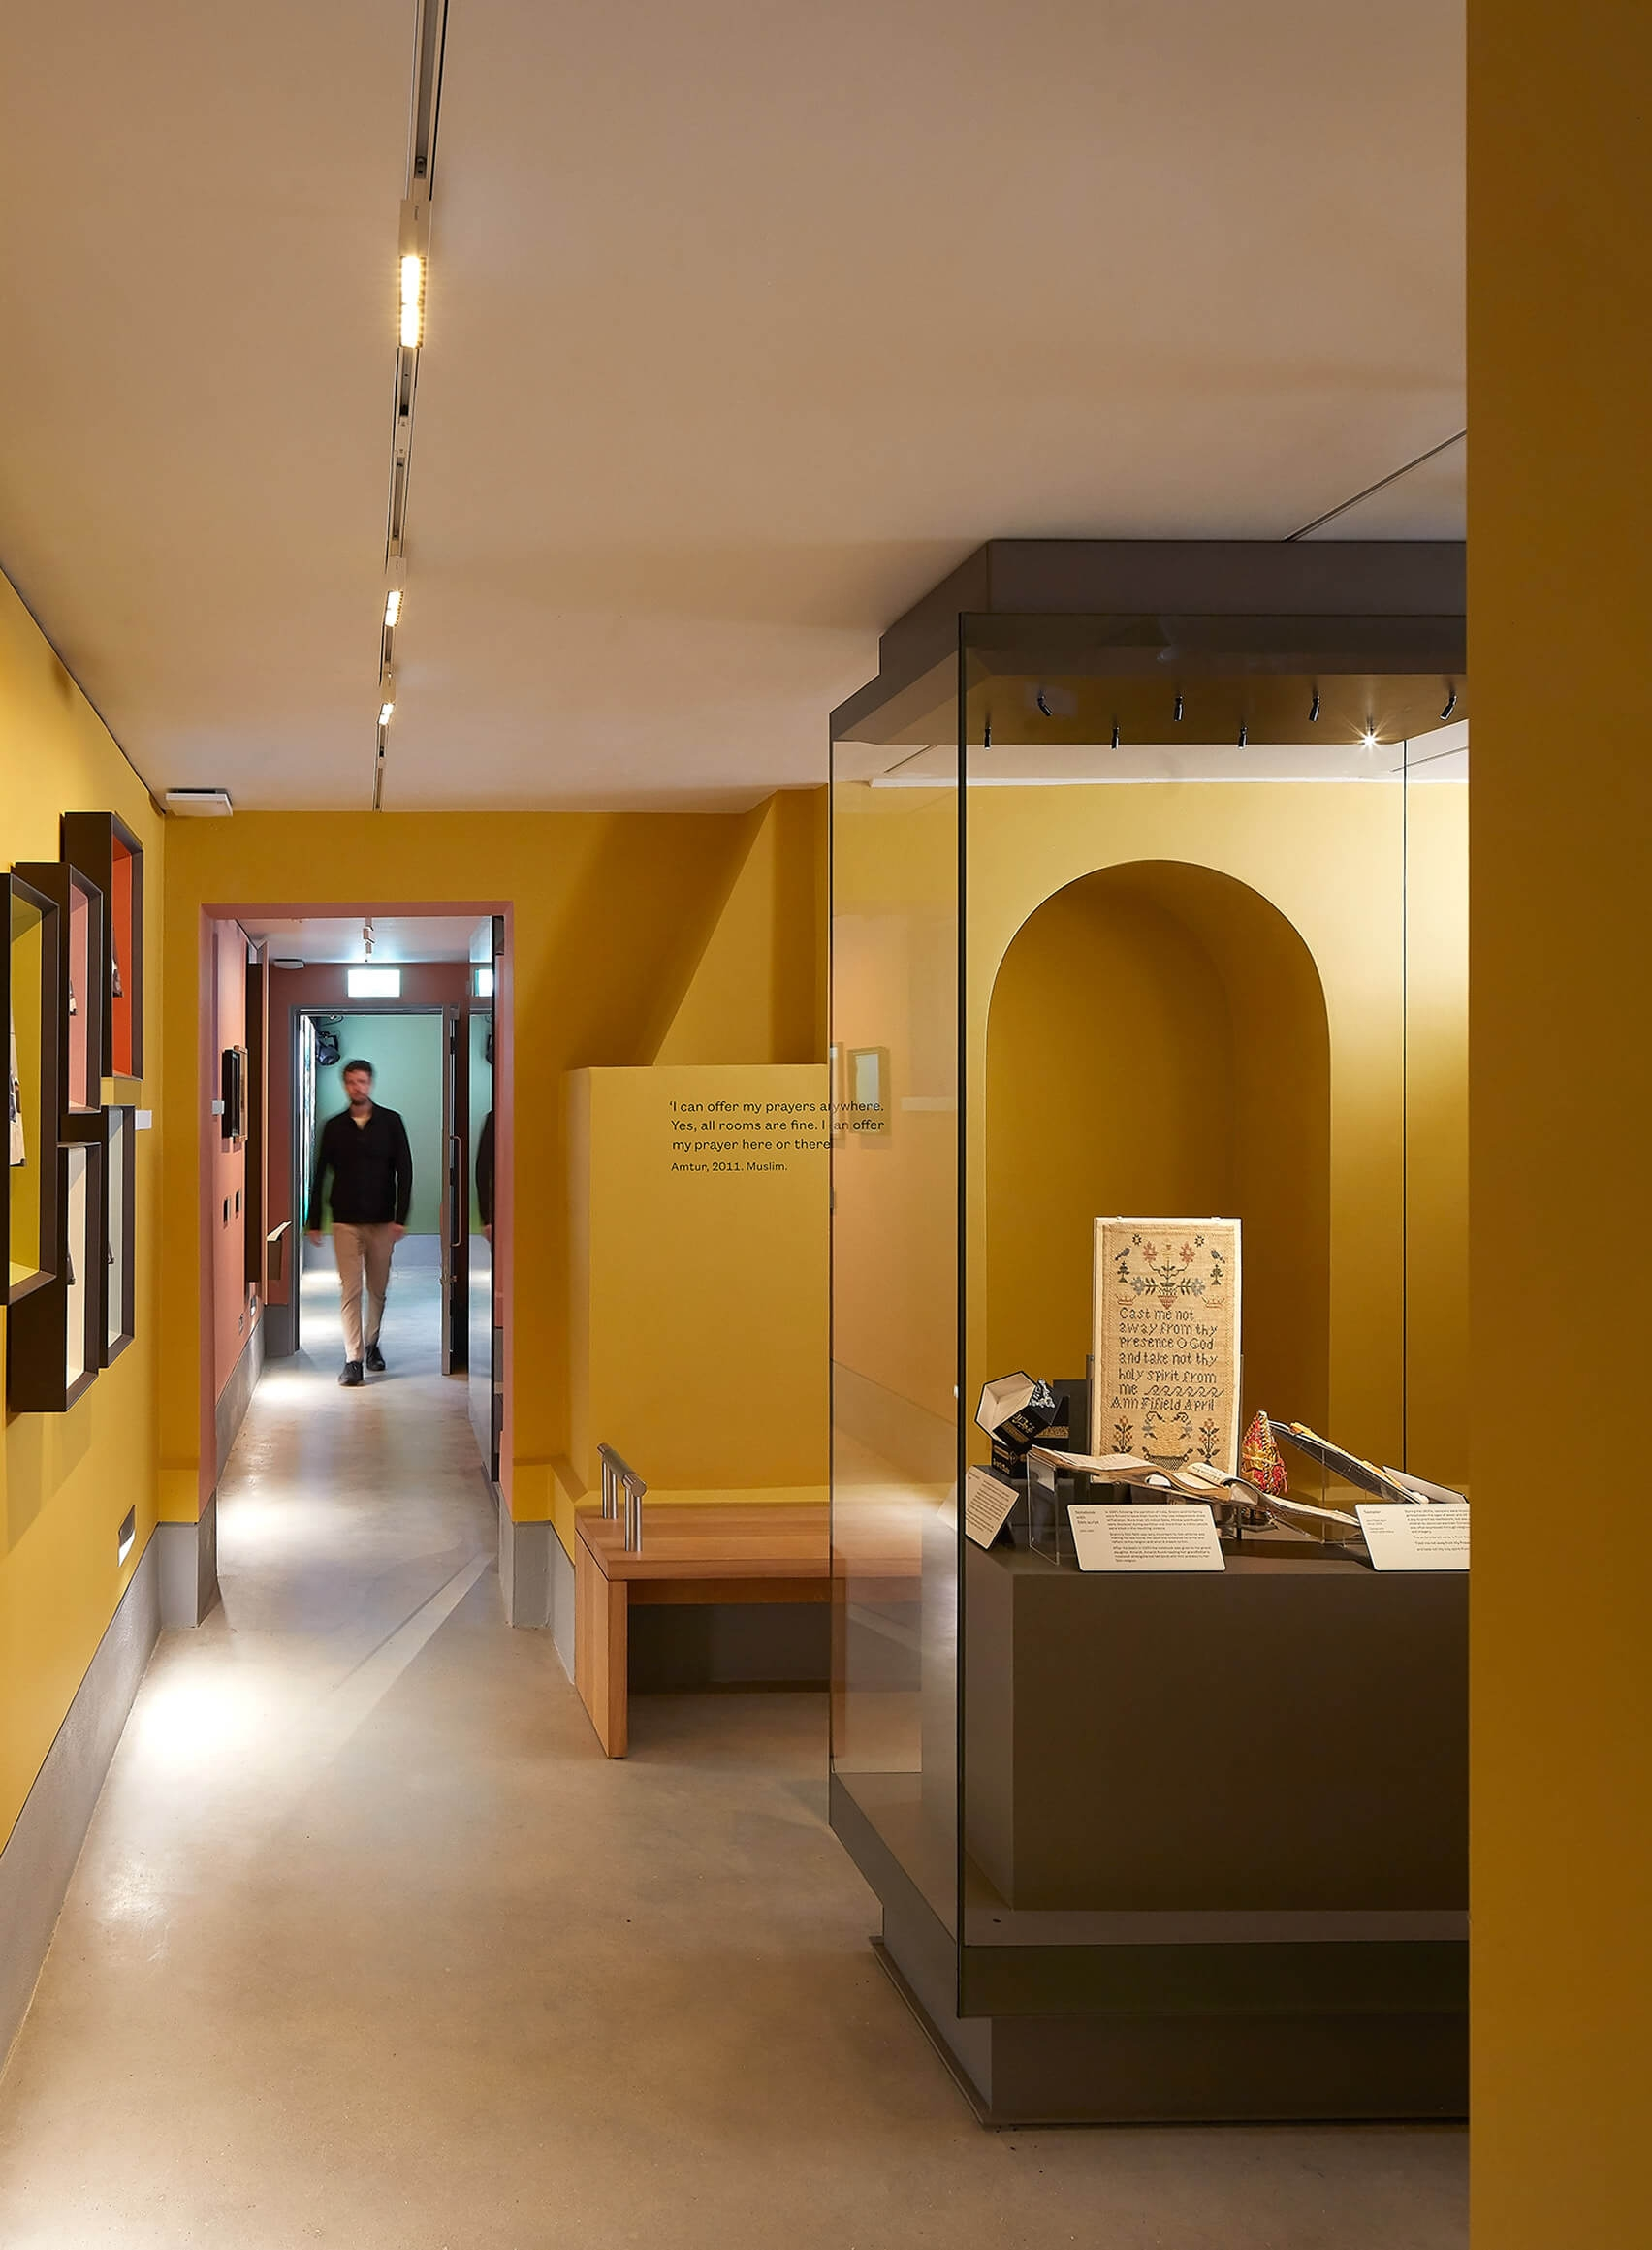 museum of the home wright wright london architecture renovations dezeen 1704 col 4